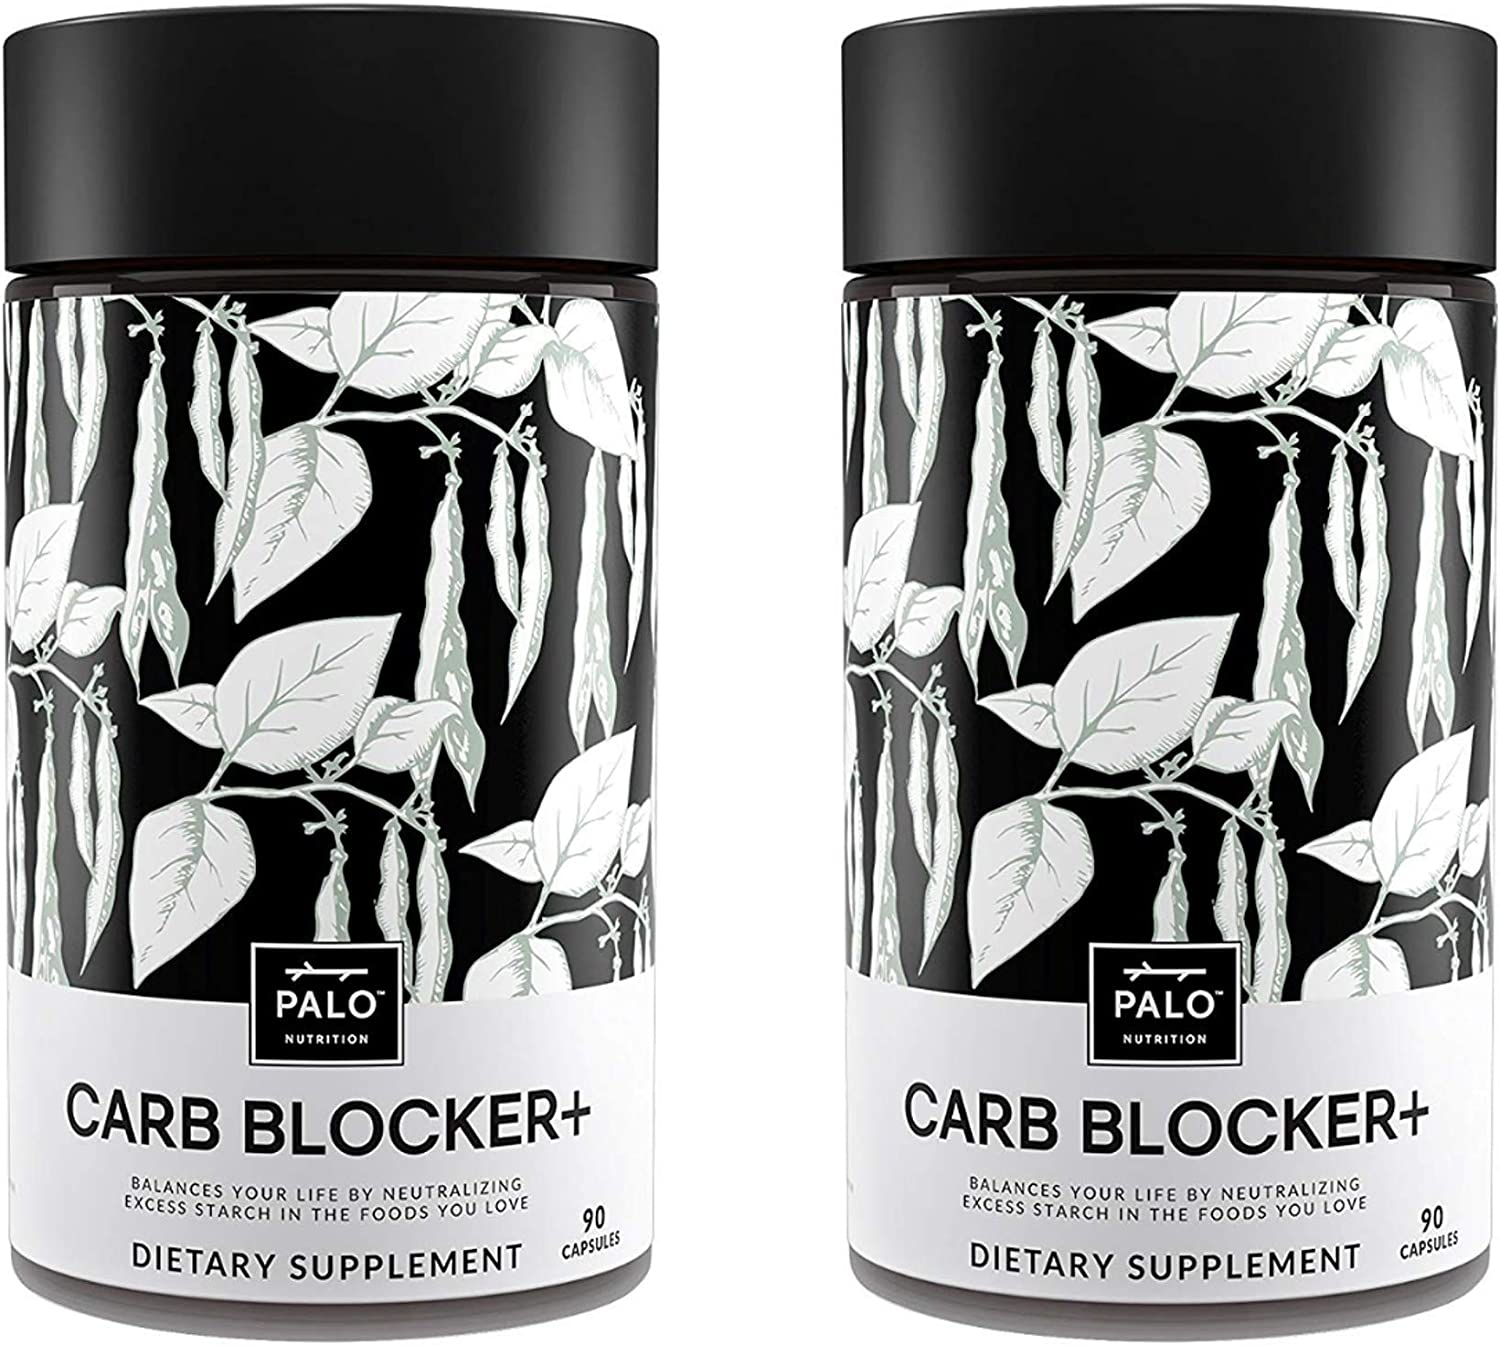 Carb Blocker 180 Count 2 Pack – Innovative Formula Composed of White Kidney Bean Extract, White Mulberry and Chromium Weight Loss, Boost Metabolism, Help Control Blood Sugar by PALO Nutrition